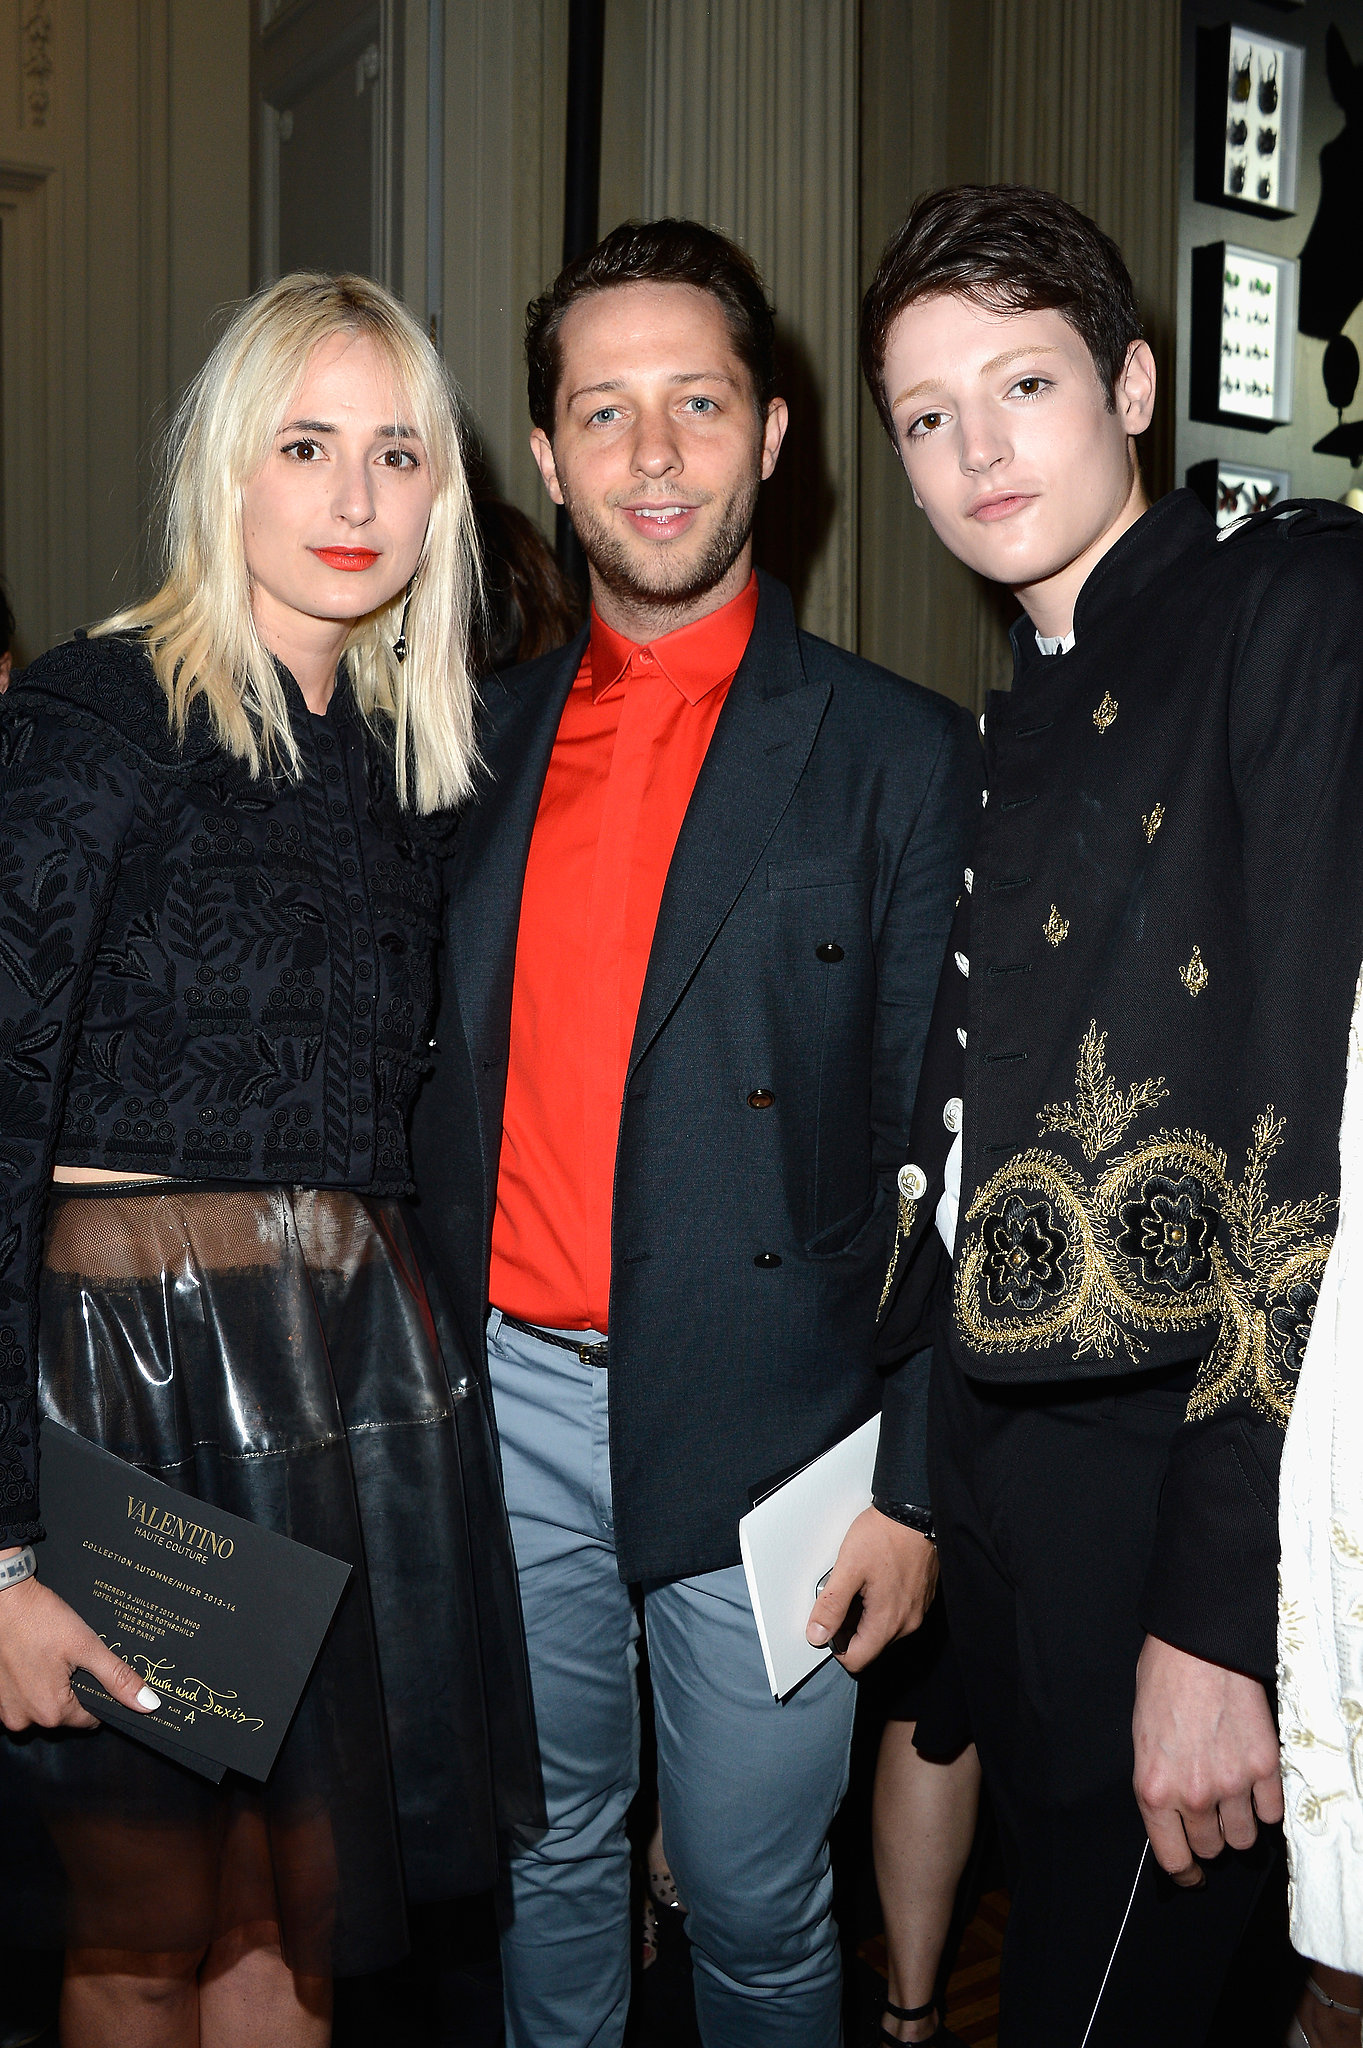 Elizabeth von Thurn und Taxis, Derek Blasberg, and Harry Brant arrived for the Paris Valentino Haute Couture show at Hotel Salomon de Rothschild.